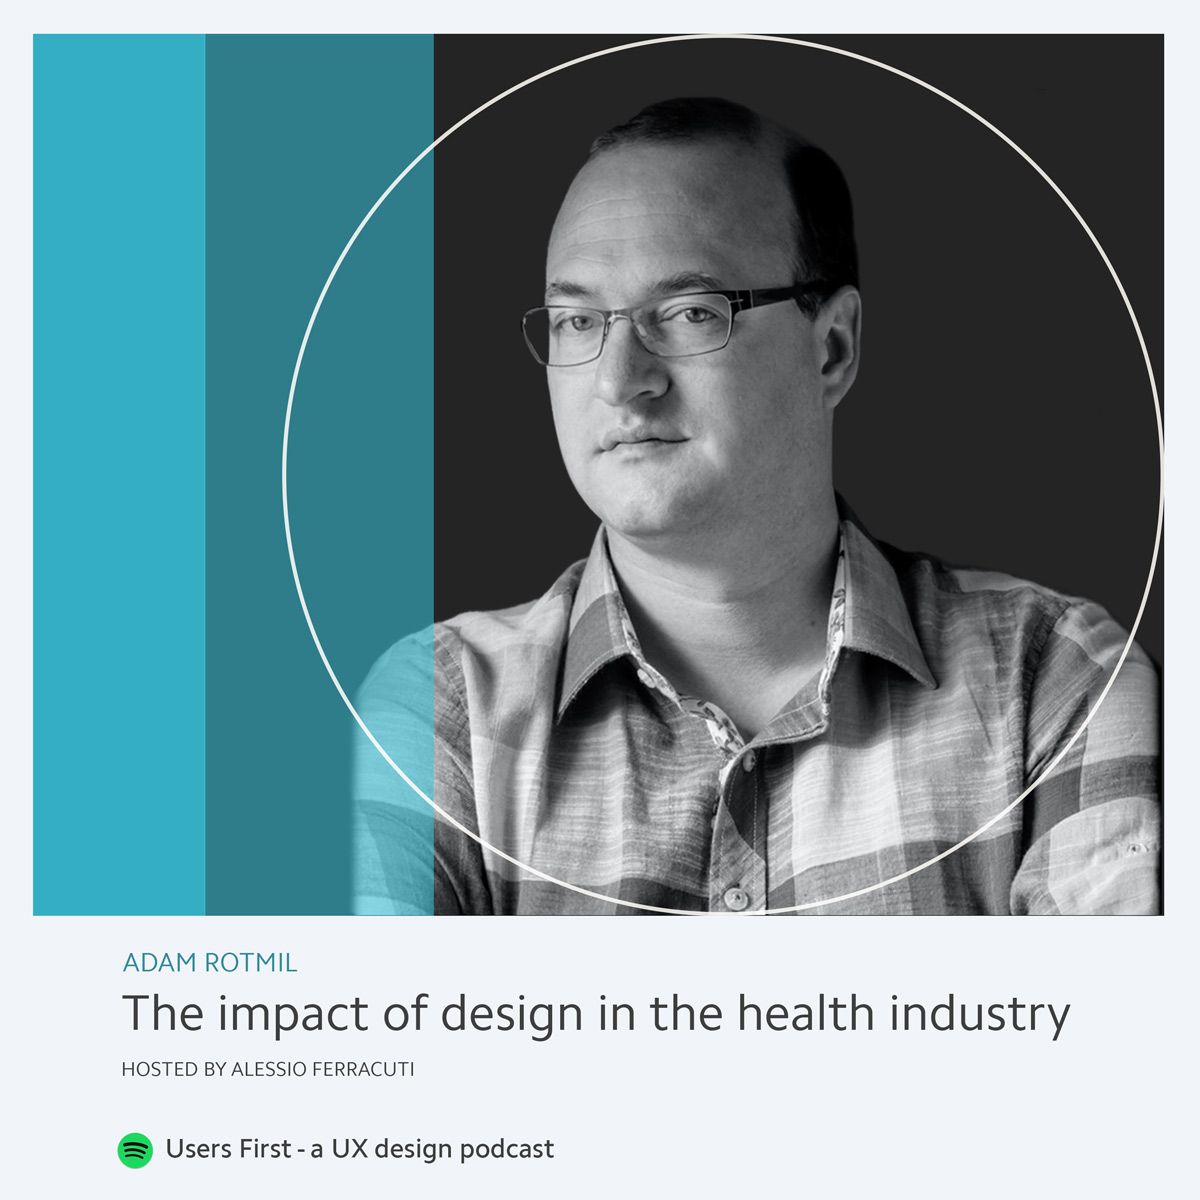 Design in health